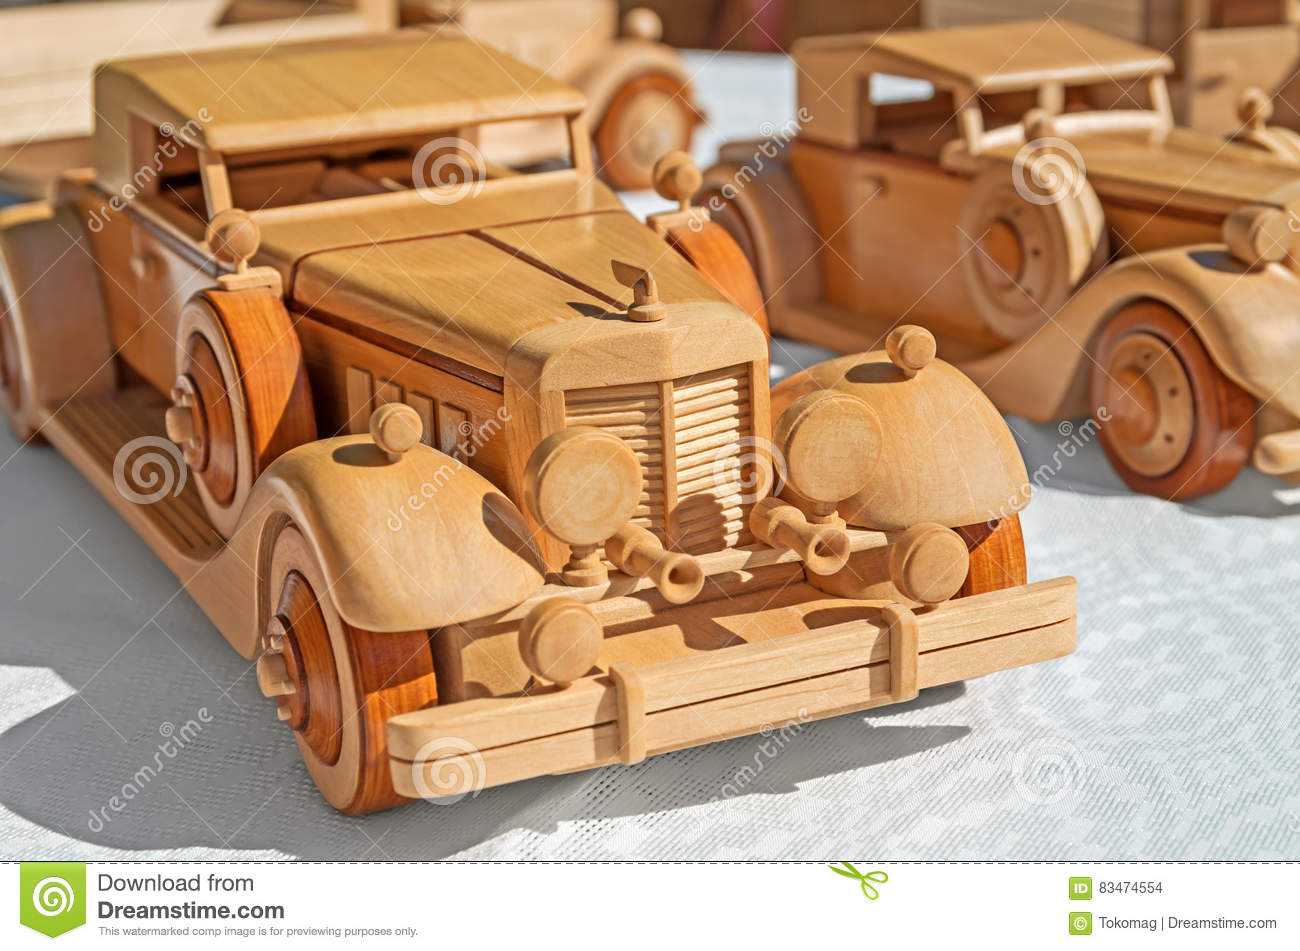 Wood Car Model Stock Photo Image Of Aged Hobbies Homemade 83474554